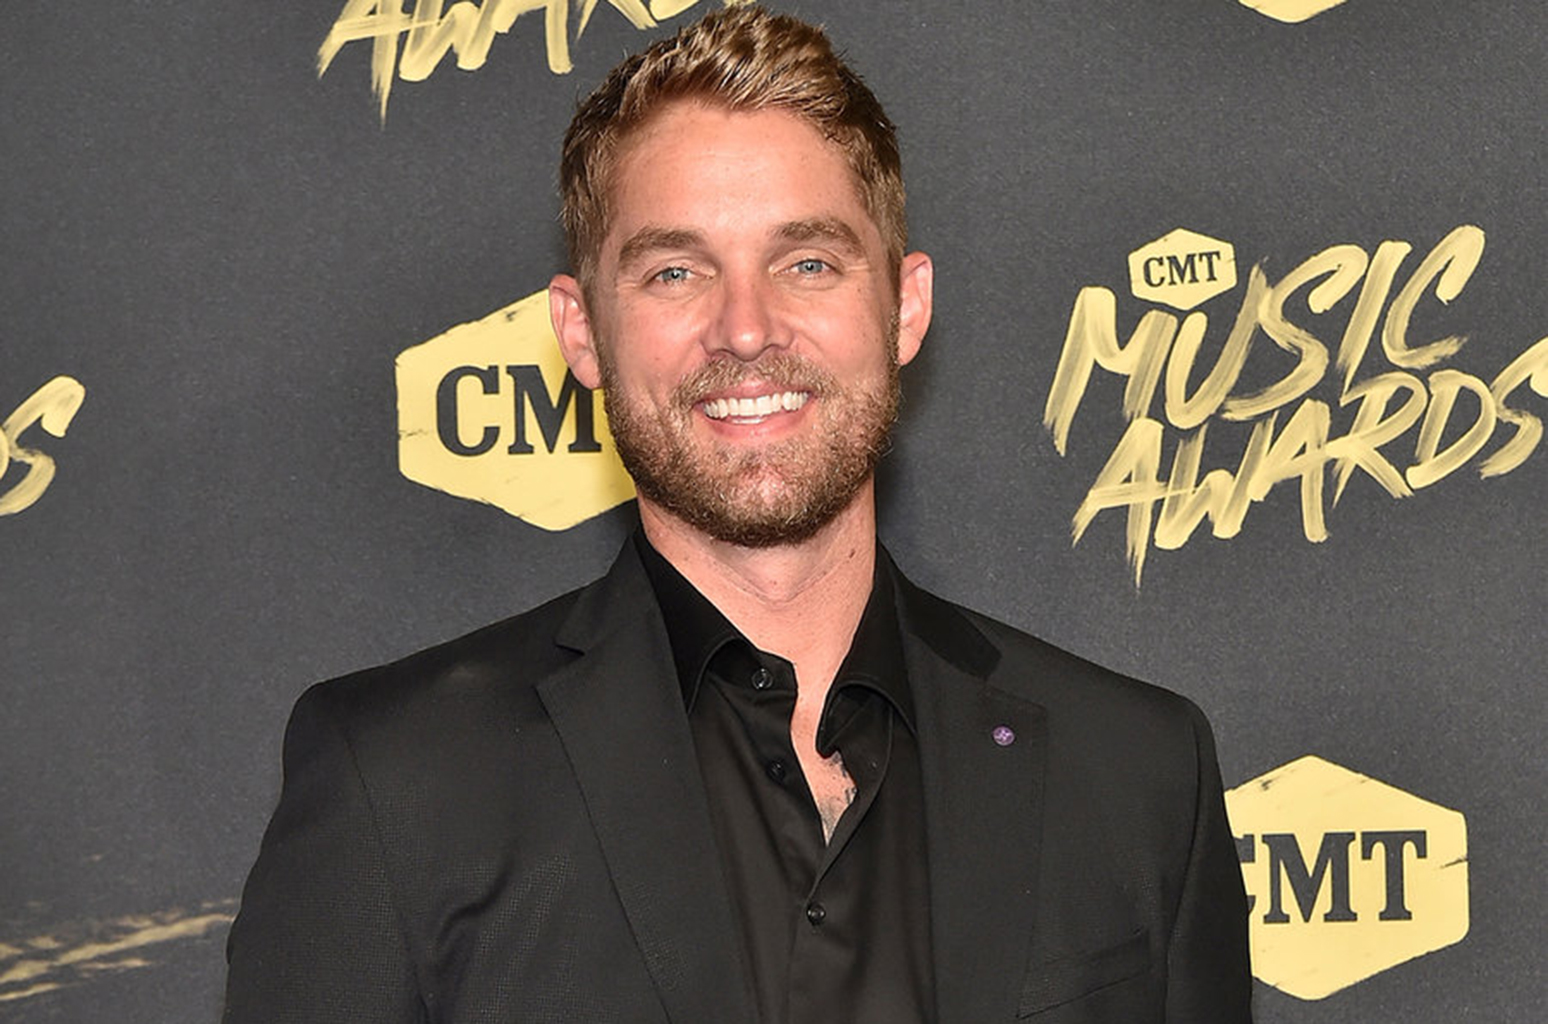 brett-young-2018-cmt-awards-red-carpet-billboard-1548.jpg